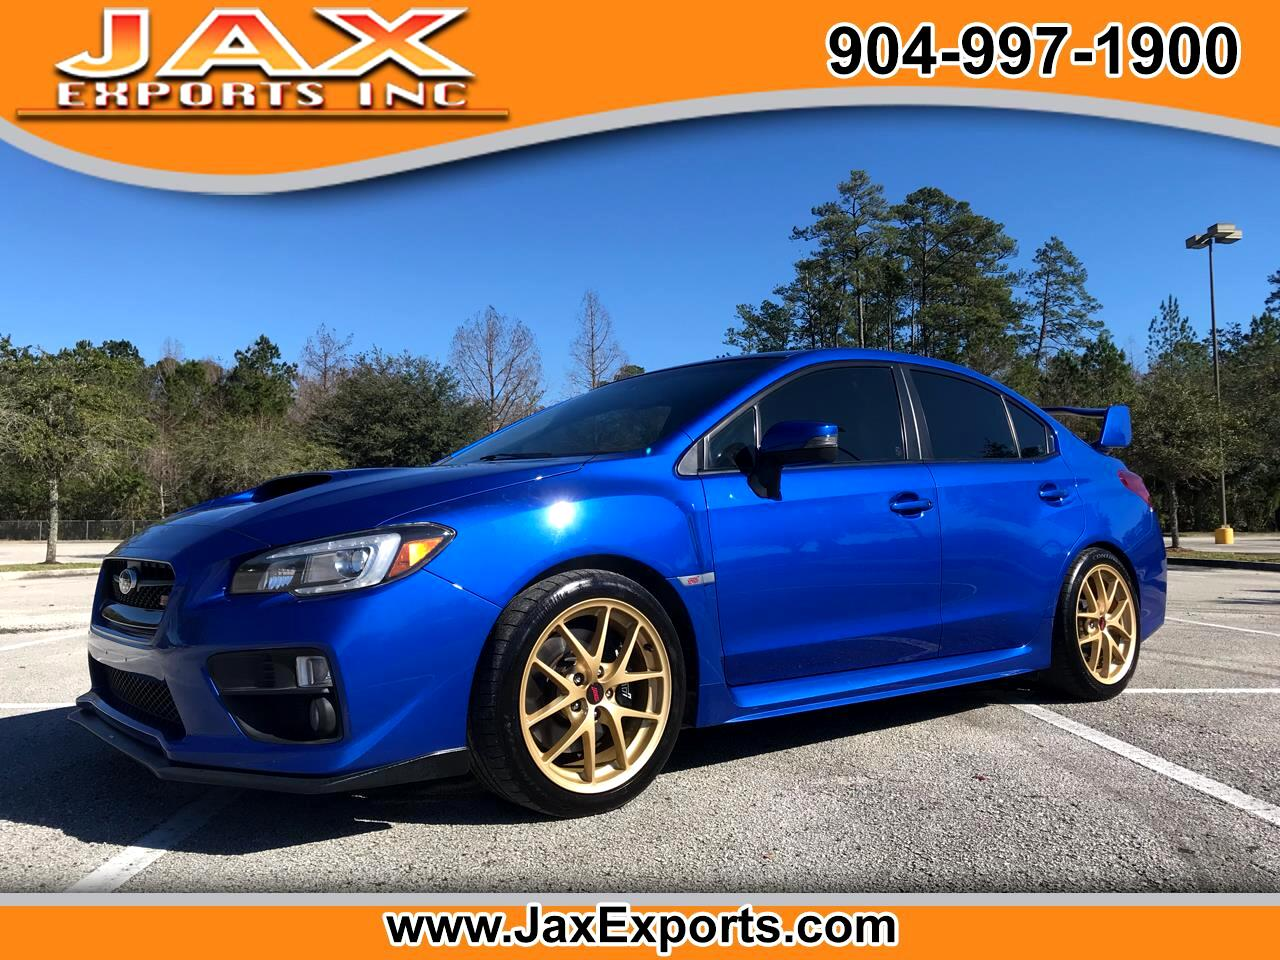 2015 Subaru WRX STI 4dr Sdn Launch Edition